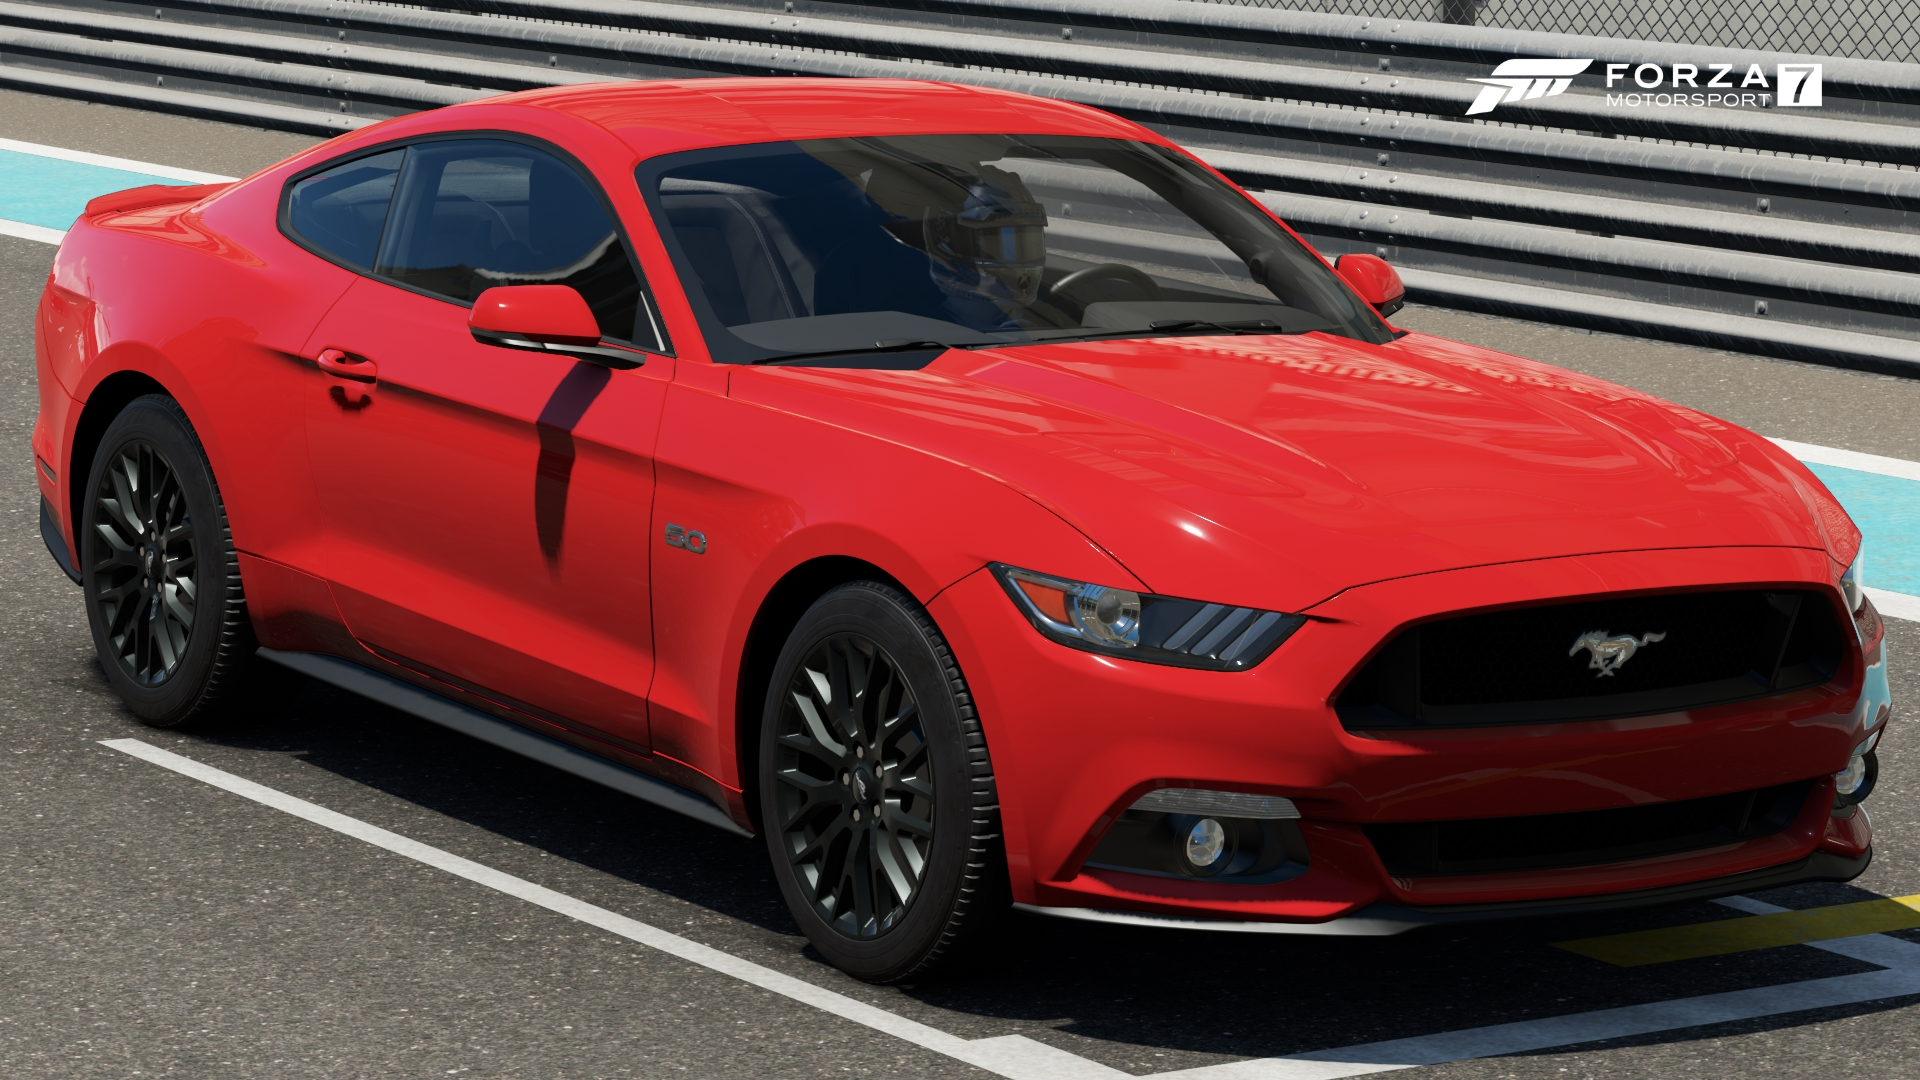 ford mustang gt 2015 forza motorsport wiki fandom powered by wikia. Black Bedroom Furniture Sets. Home Design Ideas